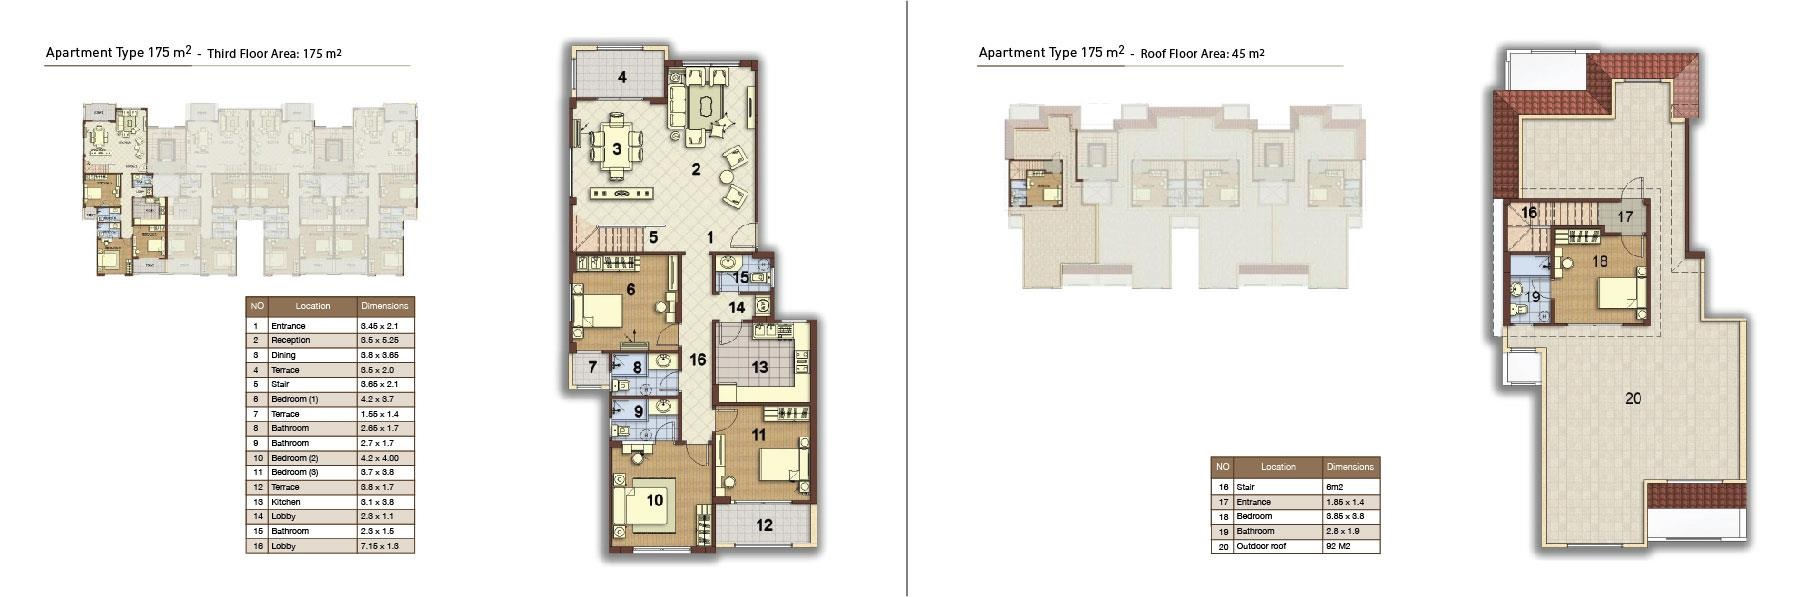 apartment type 175 corner 02